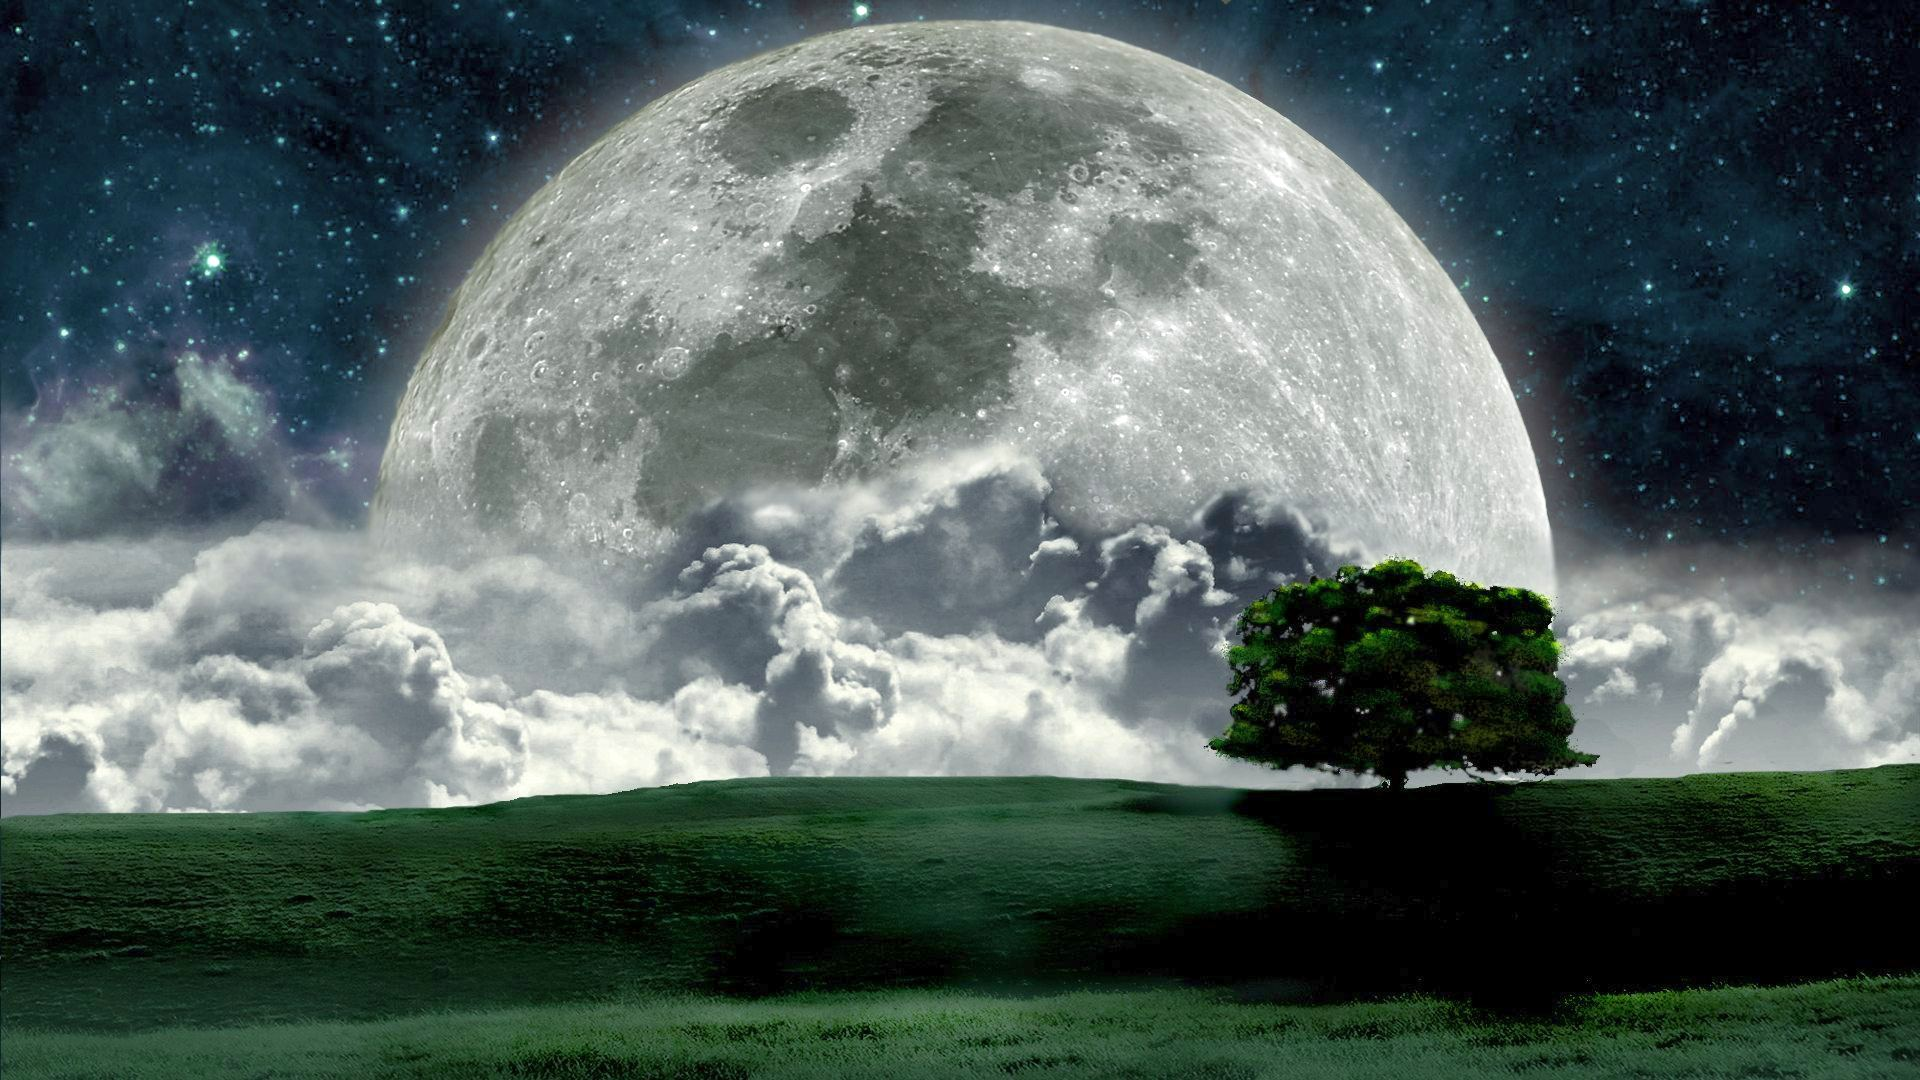 Beautiful Night Moon Photos HD Wallpaper Free Full